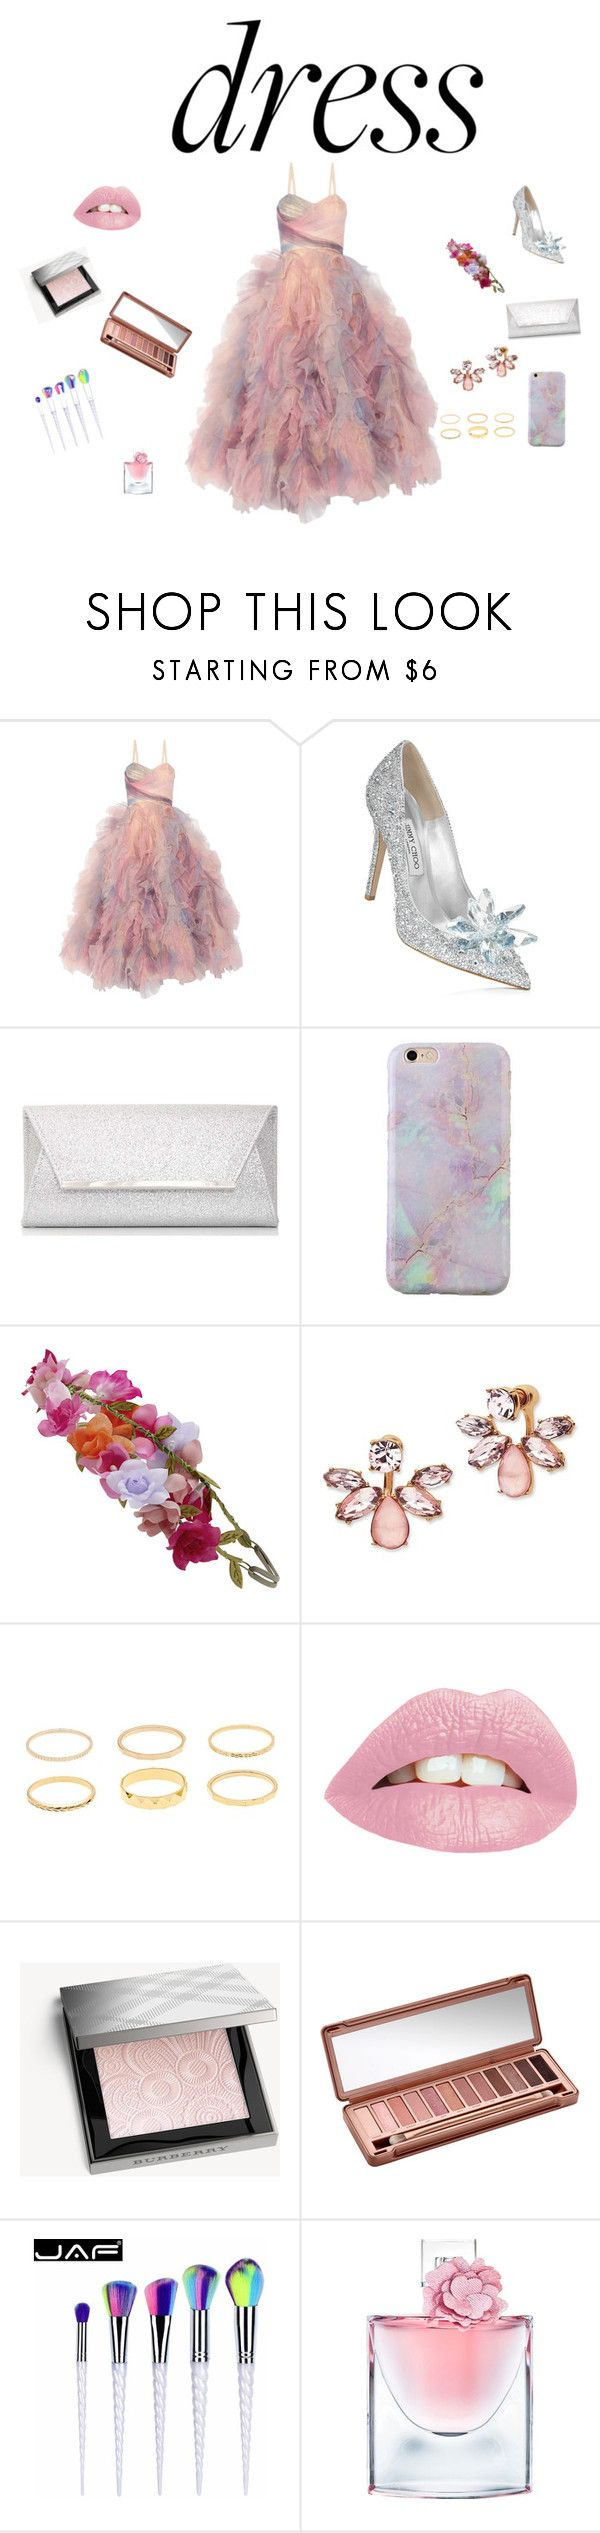 """""""mimio"""" by yesica-rey on Polyvore featuring moda, Marchesa, Dorothy Perkins, Accessorize, Burberry, Urban Decay y Lancôme"""